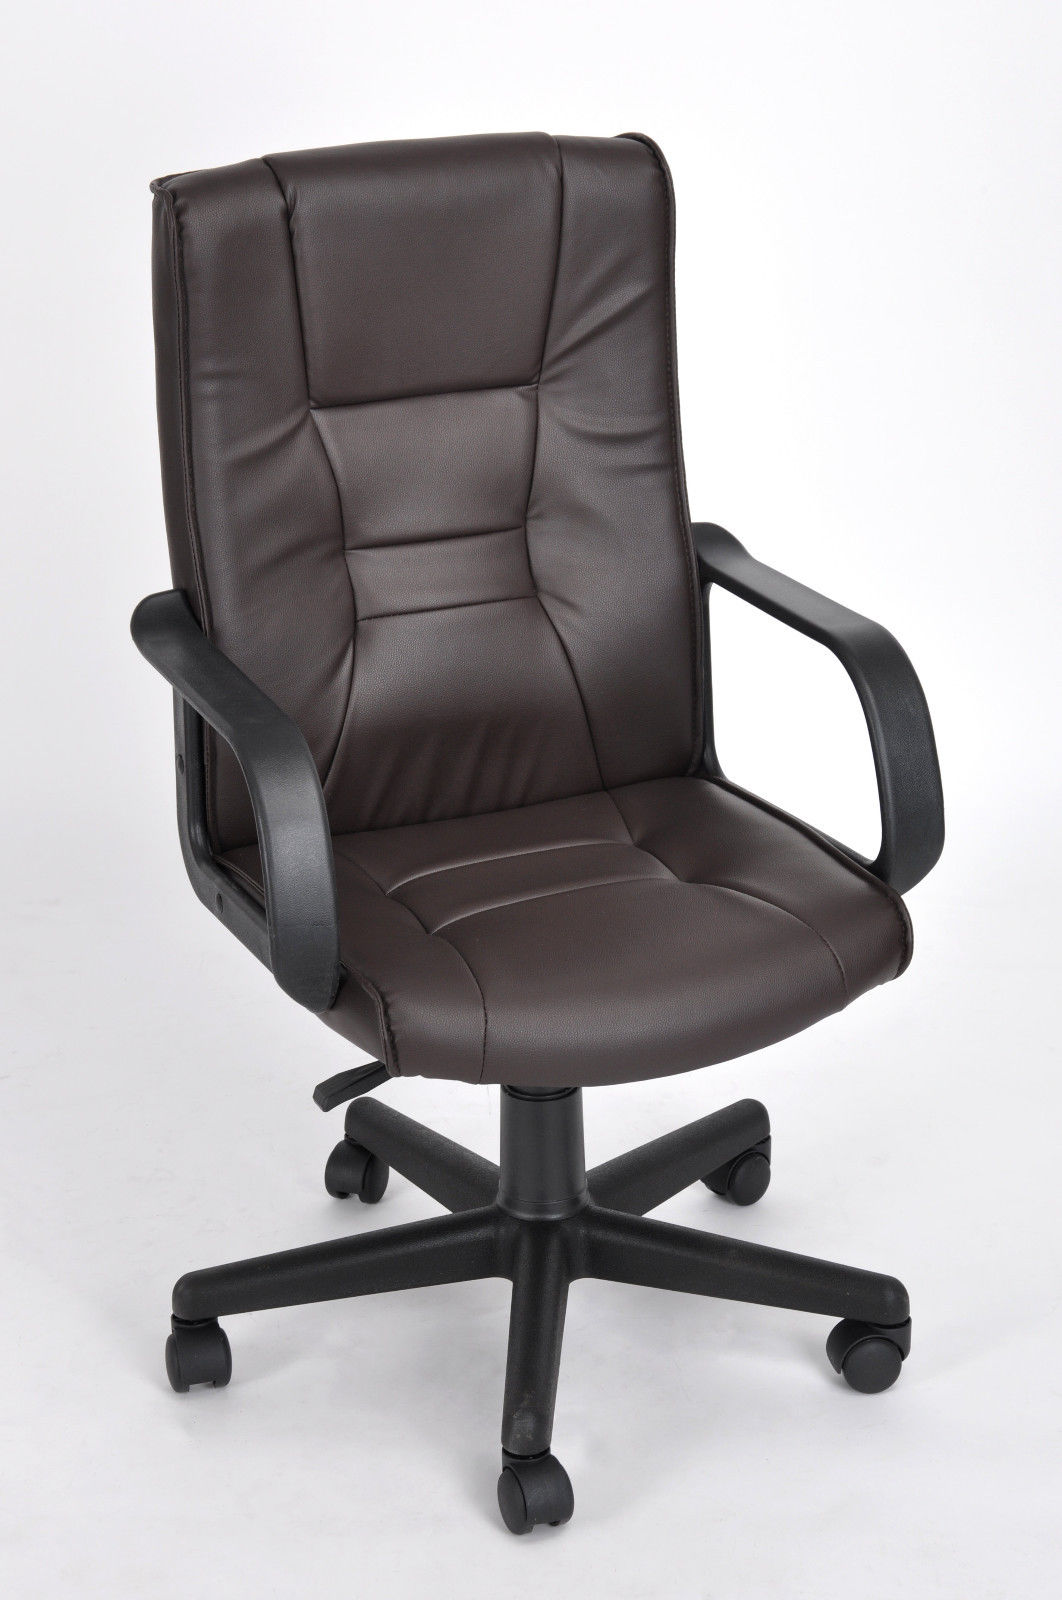 Office Chair With Arms High Back Pu Leather Executive Office Desk Task Computer